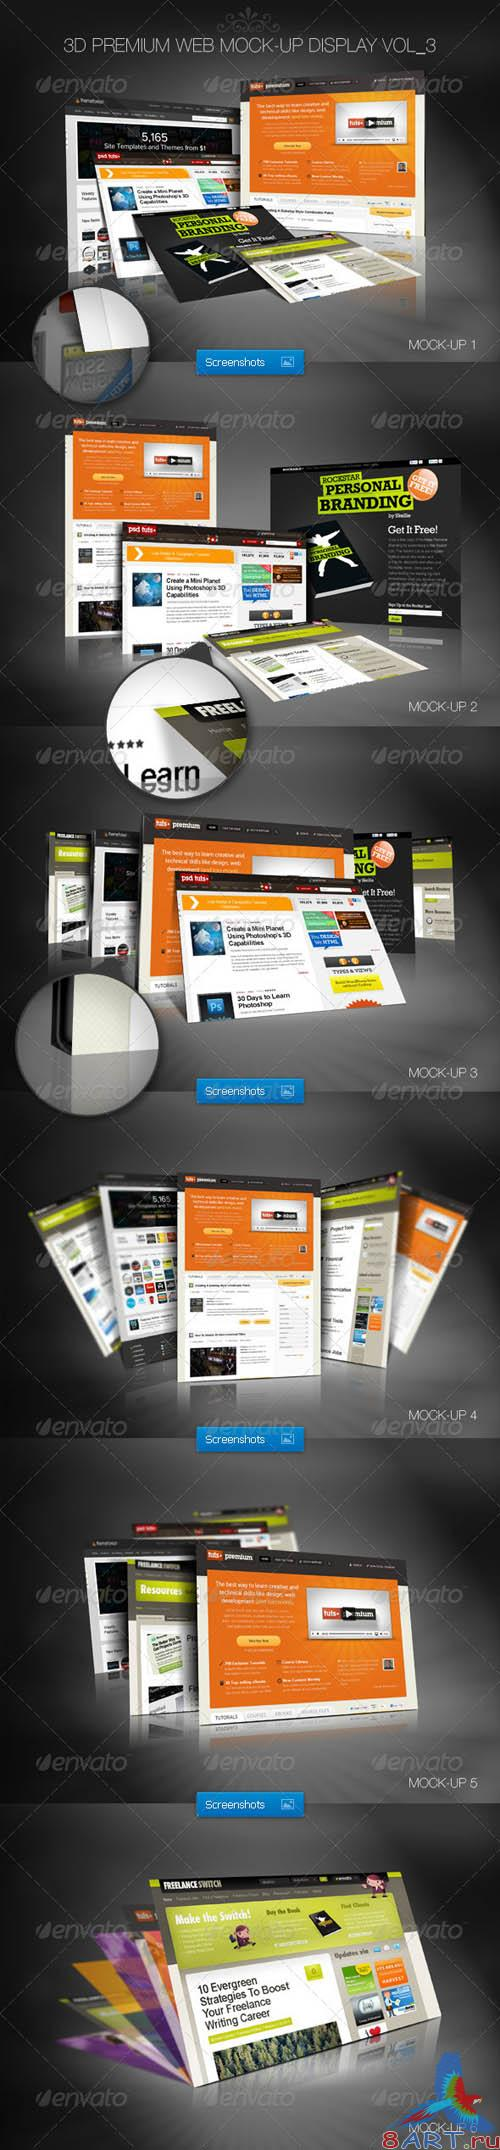 GraphicRiver 3D Premium Web Mock-Up Display Vol_3 - REUPLOAD